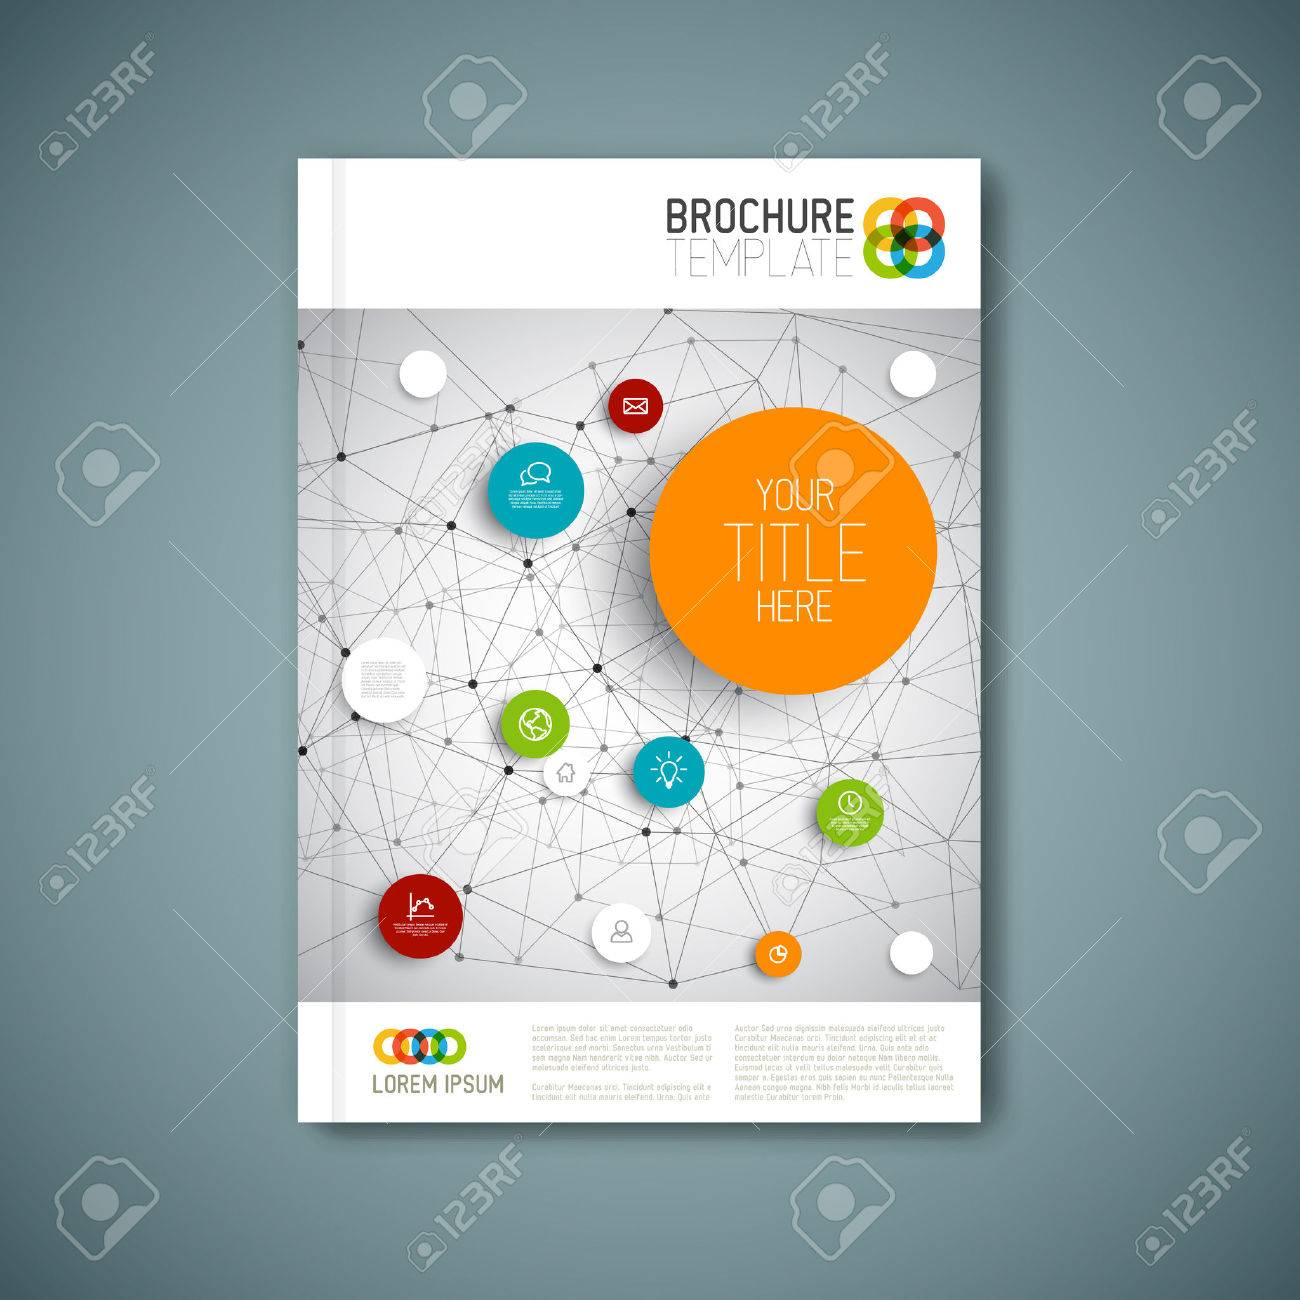 Modern abstract brochure, report or flyer design template - 33019537